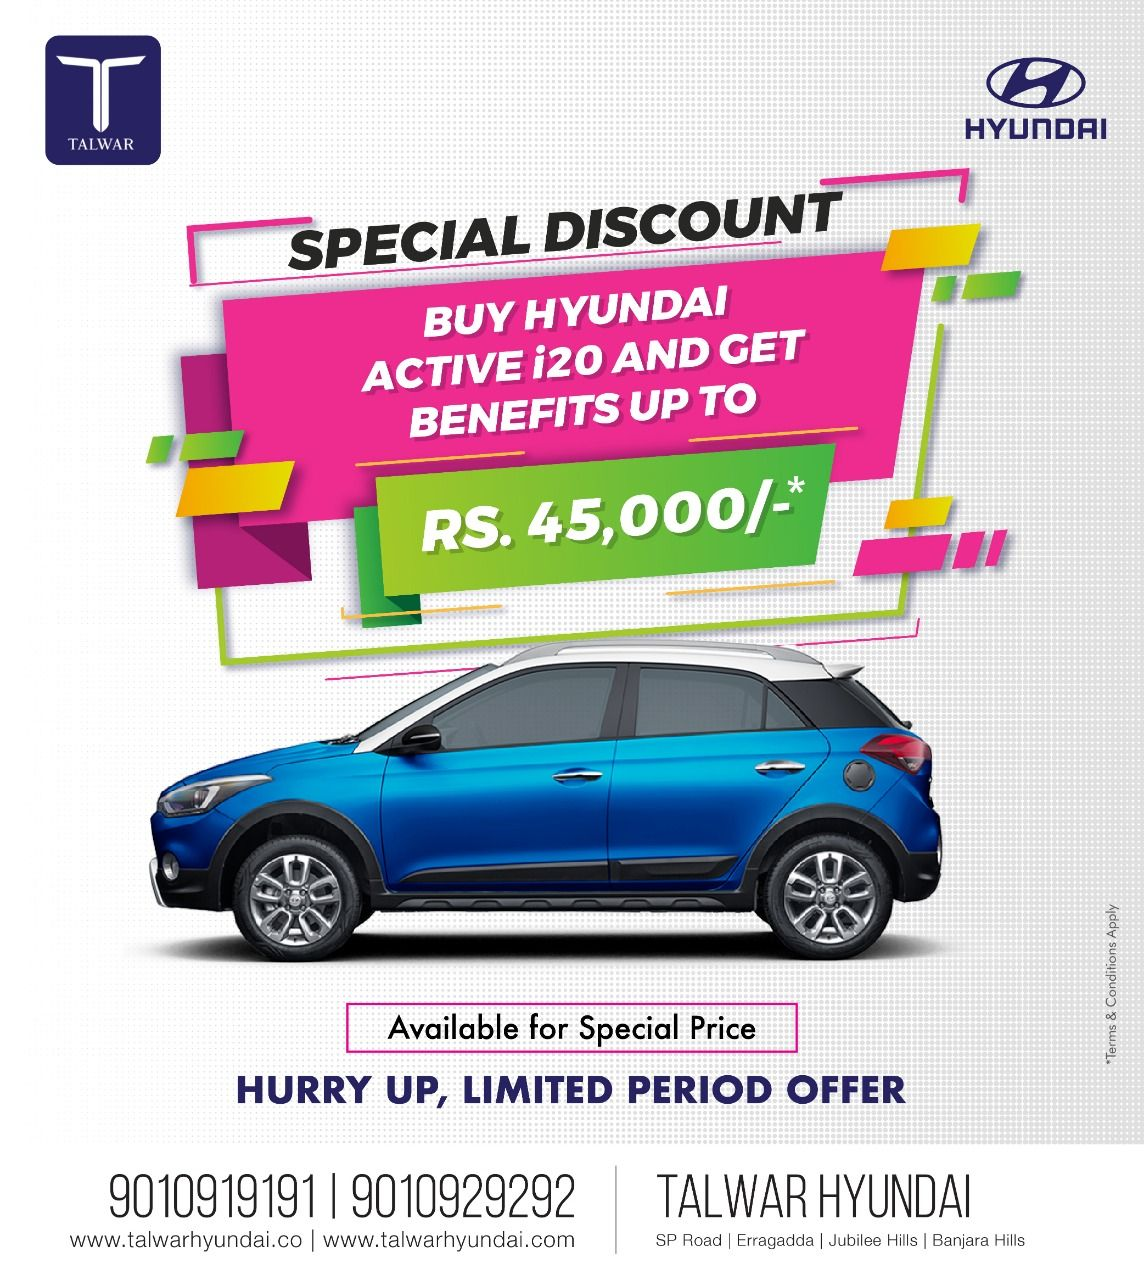 Activei20 Now Available For Specialprice Talwarhyundai This Festiveseason Benefits Upto 1lakh On Selected Model Festival Season Special Price Festival